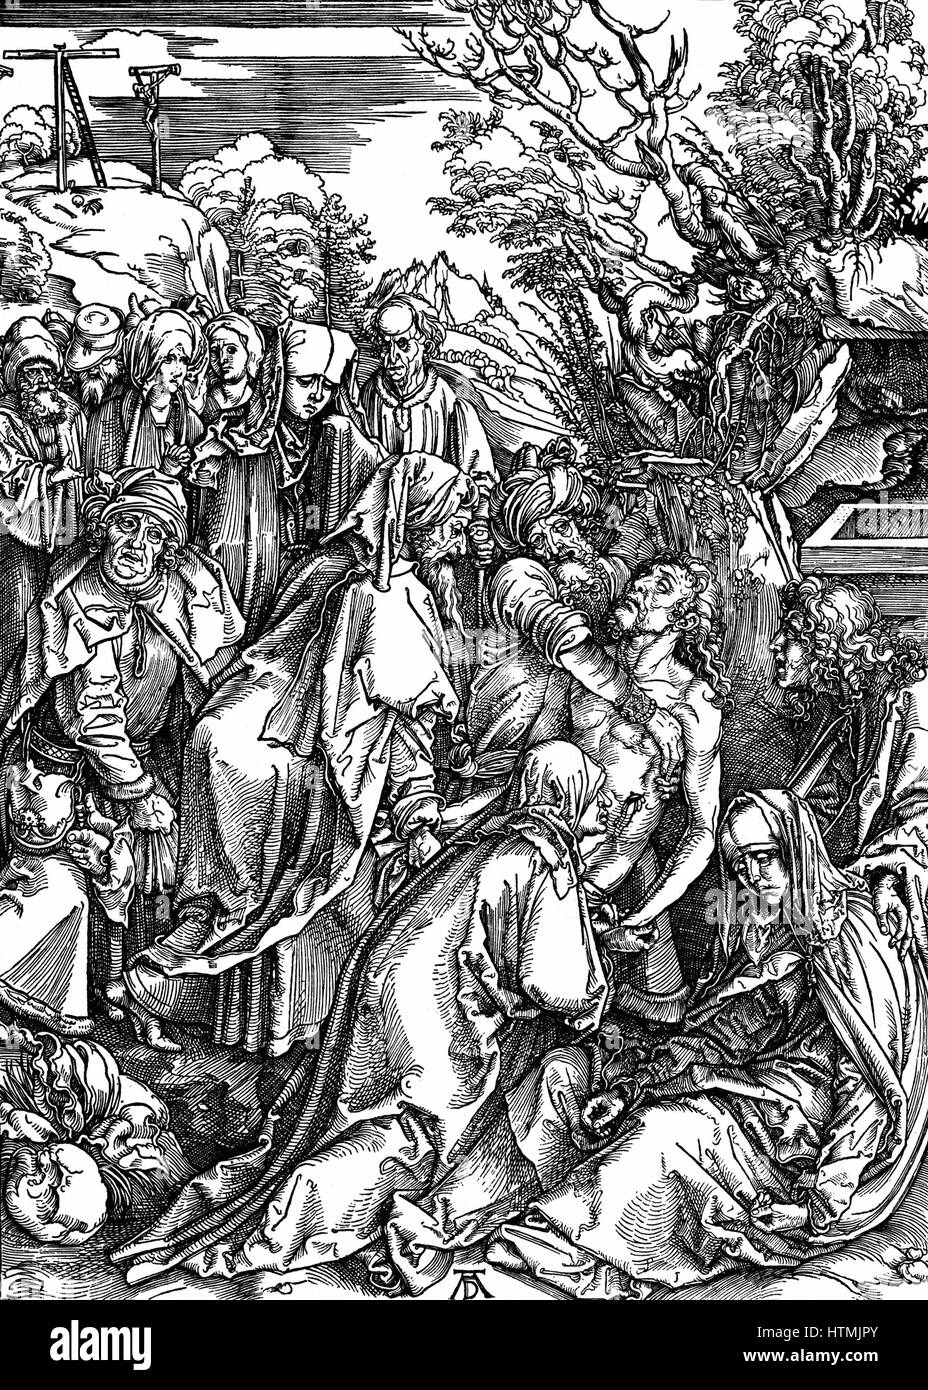 The Entombment. Woodcut by Albrecht Durer from his series of seven woodcuts for The Great Passion c.1497-1500 - Stock Image